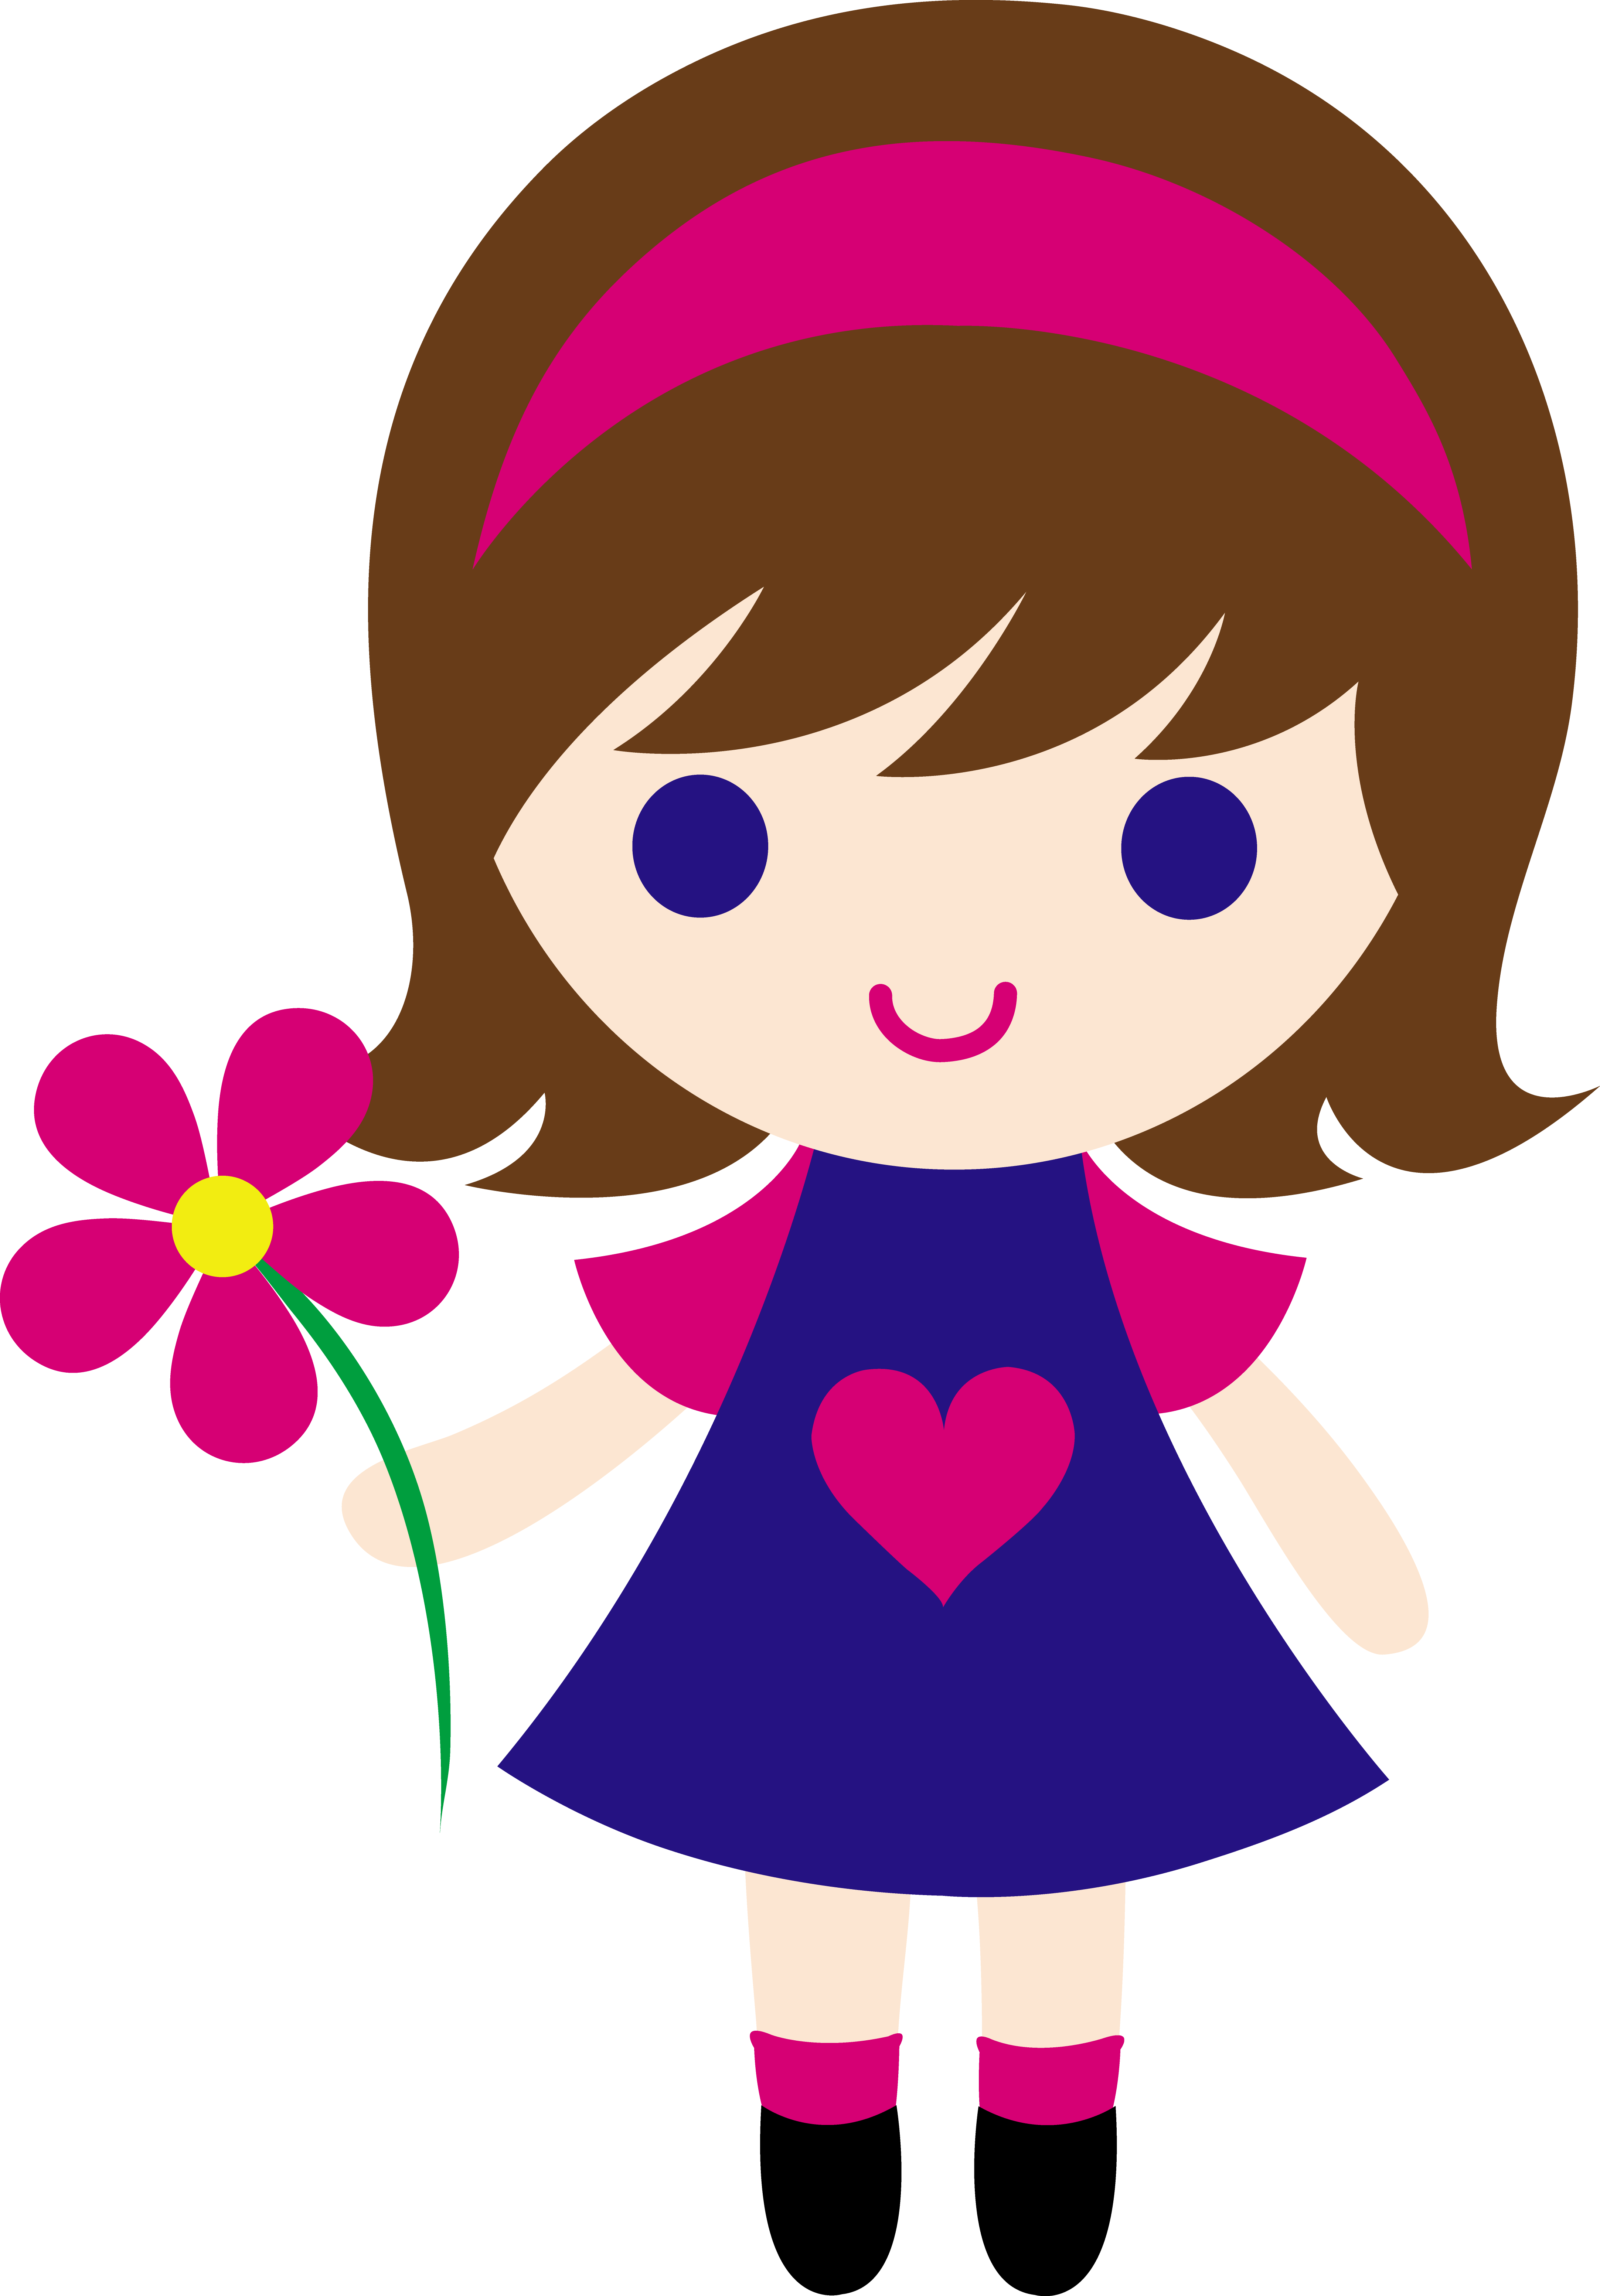 4330x6214 My Clip Art Of A Little Girl Holding A Pink Daisy. Sweet Clip